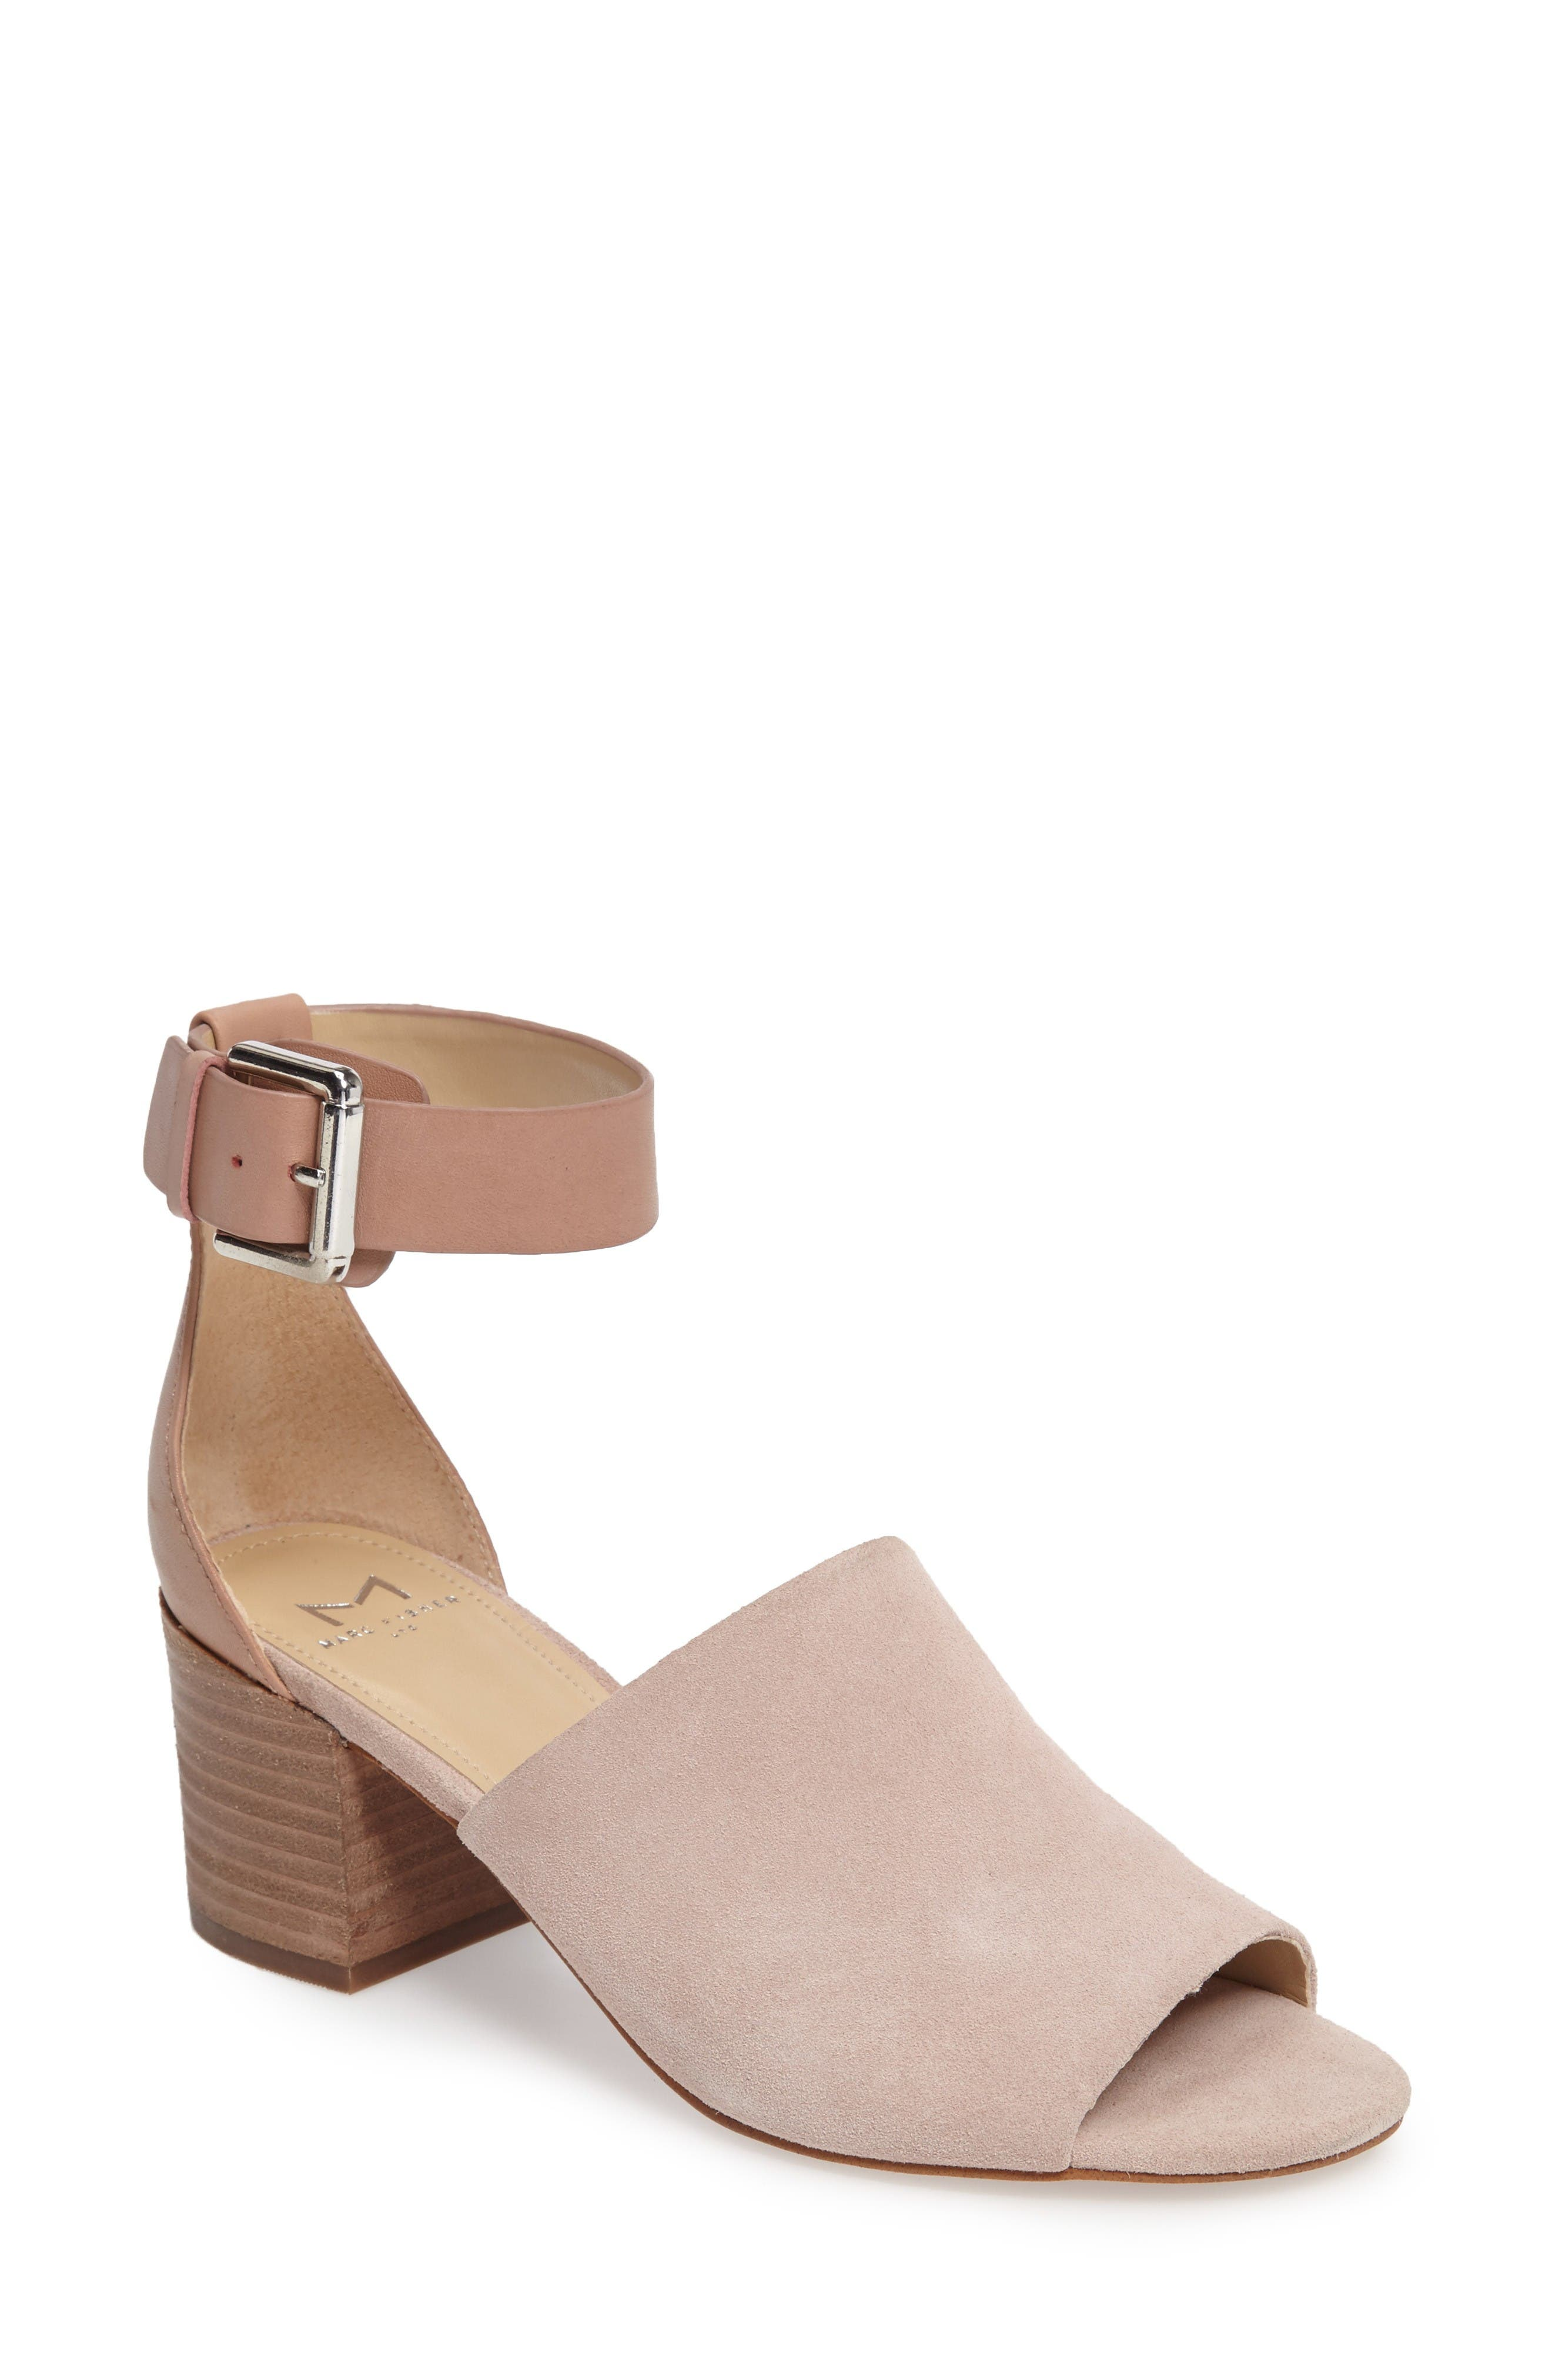 MARC FISHER LTD Robe Sandal